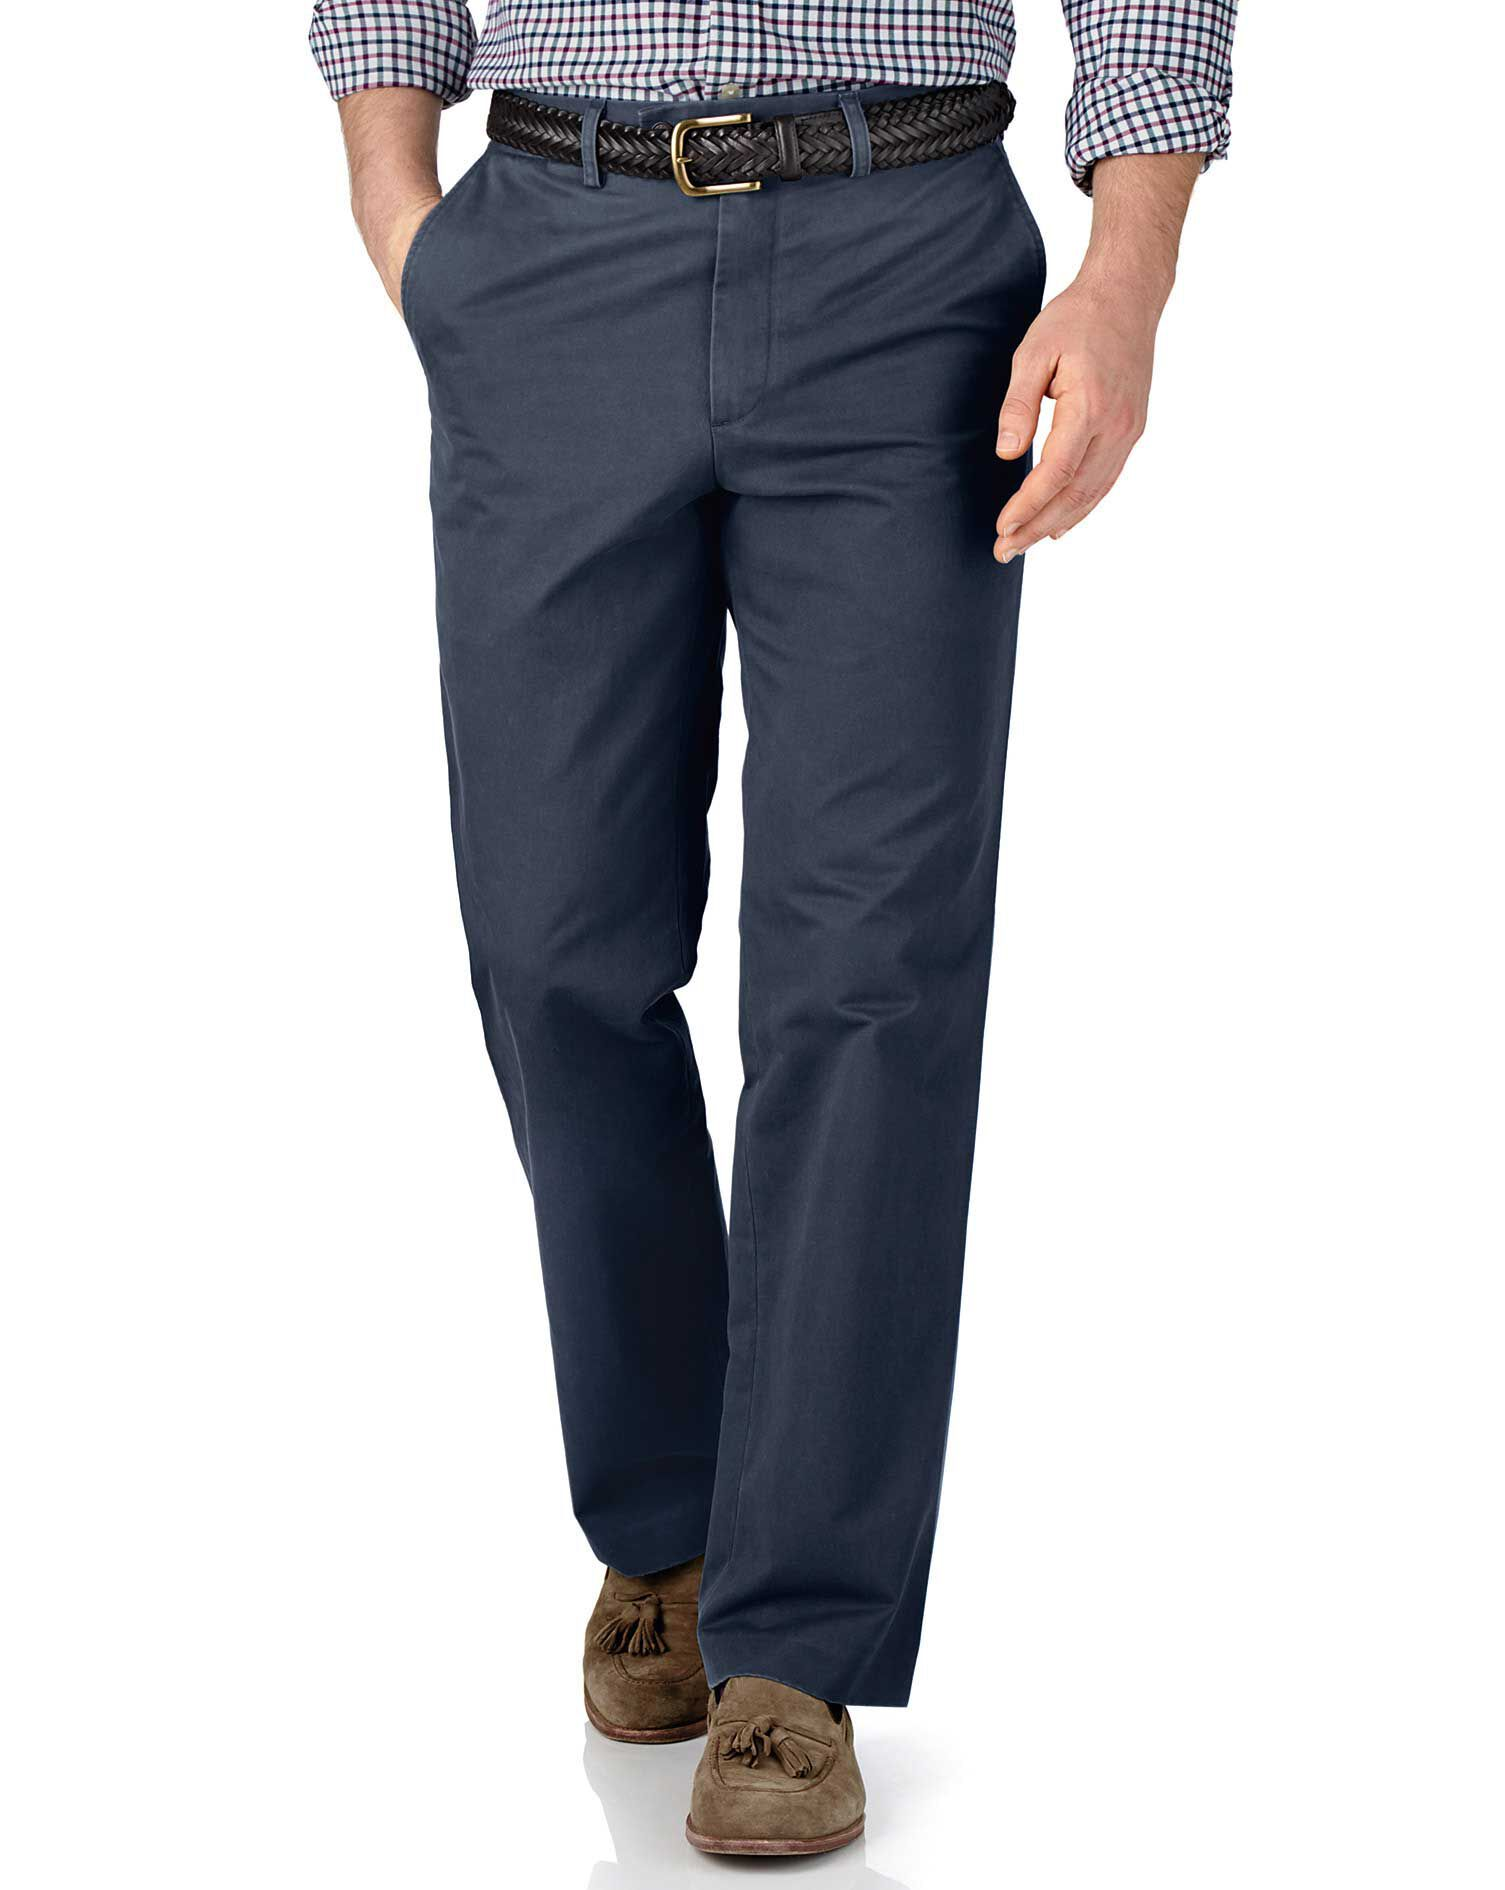 Airforce Blue Classic Fit Flat Front Cotton Chino Trousers Size W32 L30 by Charles Tyrwhitt